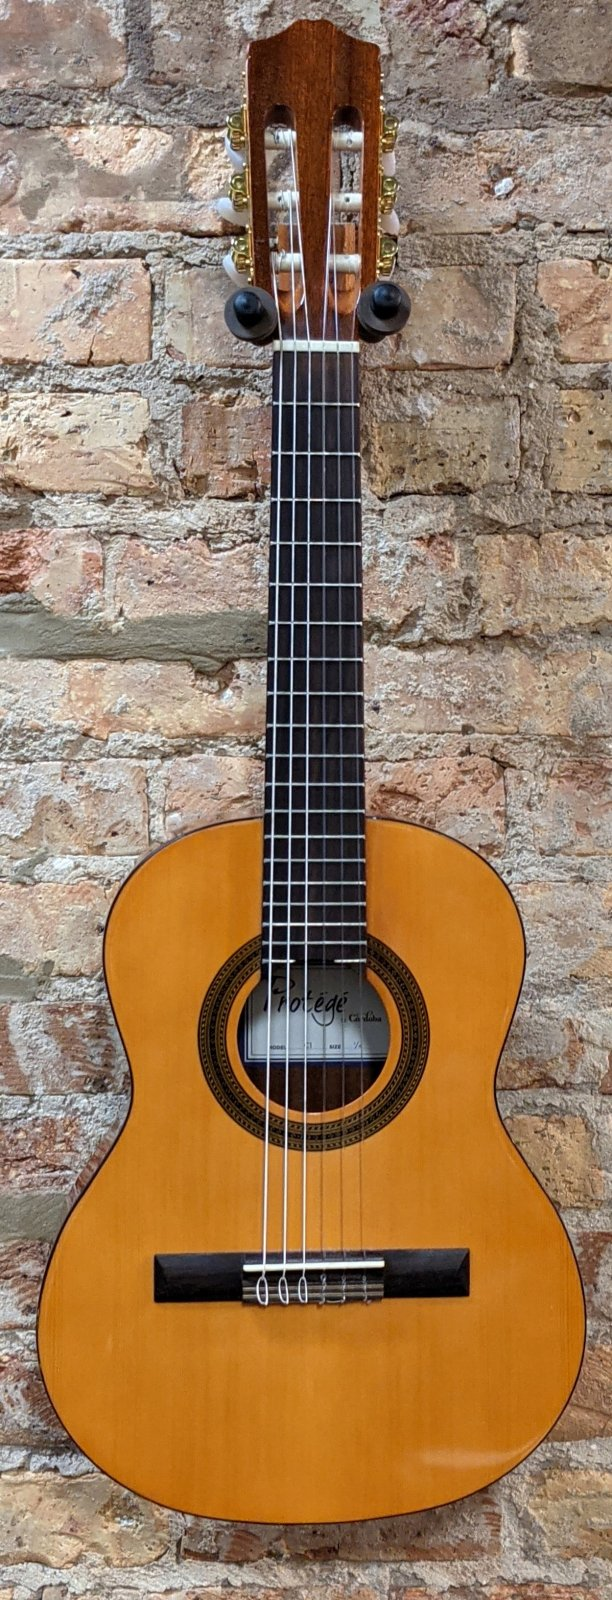 Used Protege C1 1/4 Size Acoustic